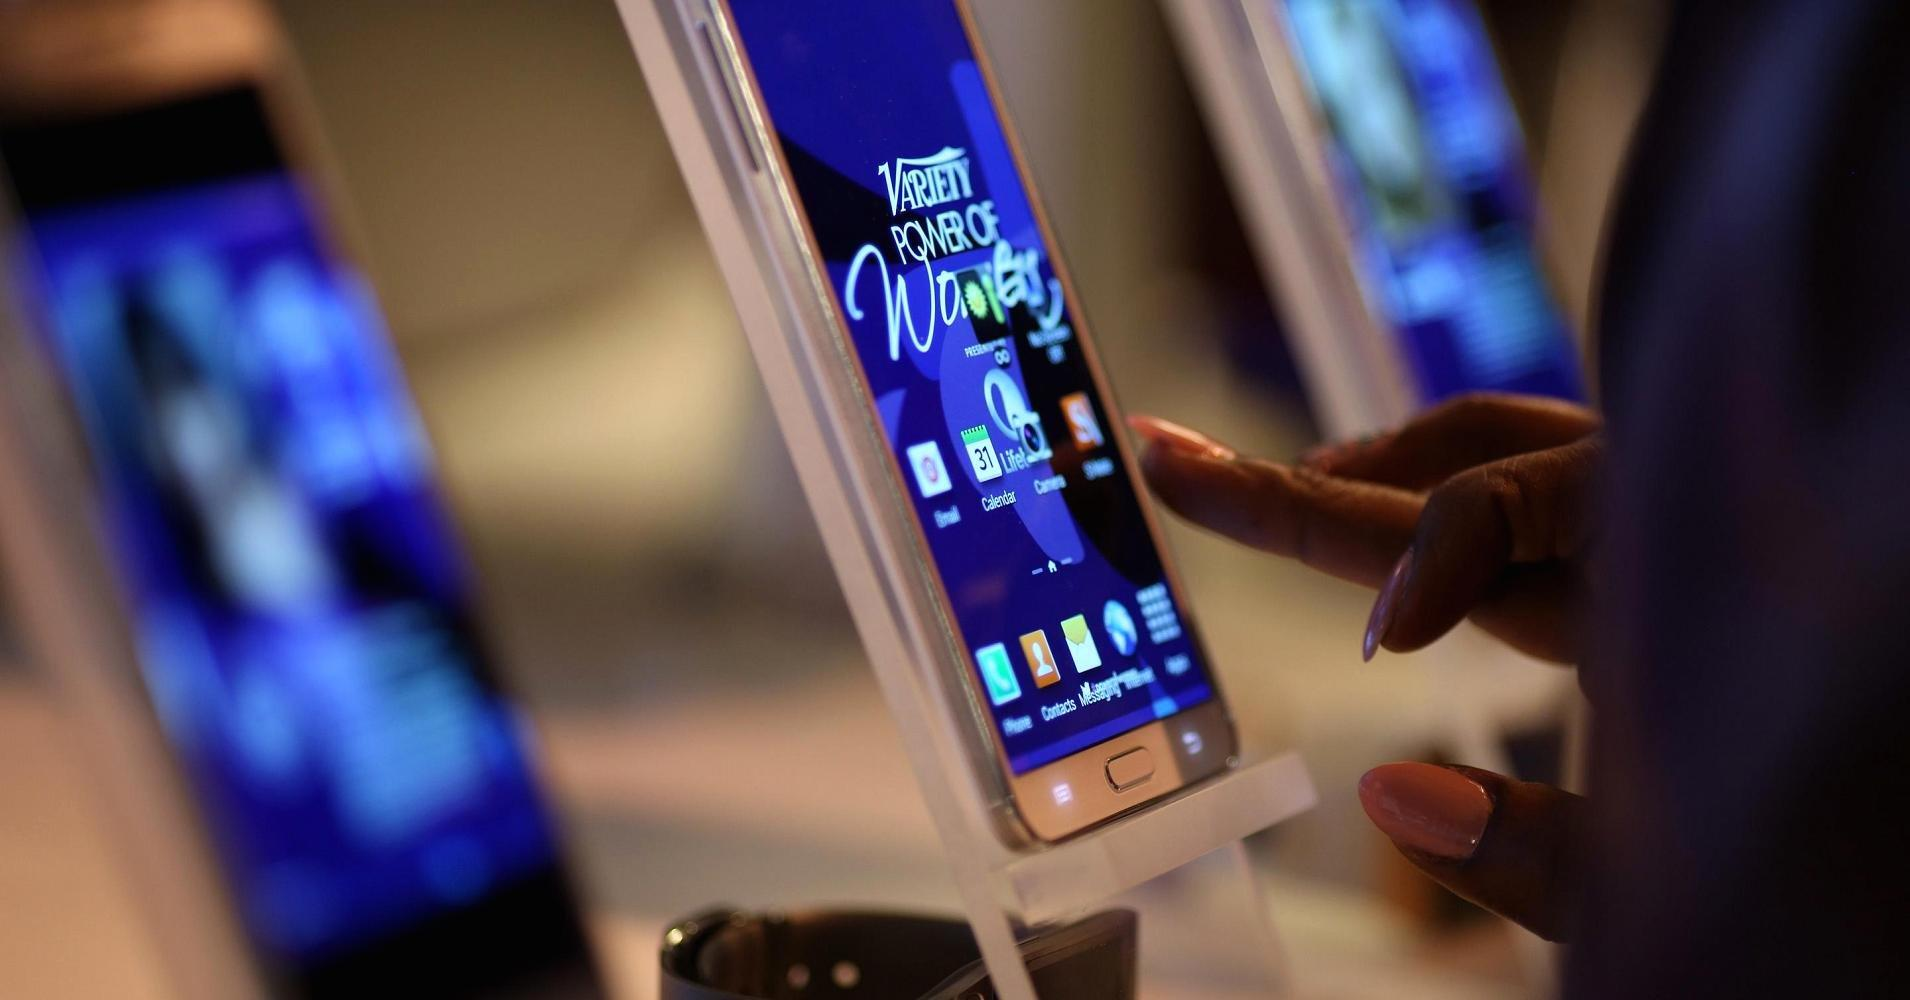 Galaxy Note 7 fires caused by battery issues: Samsung